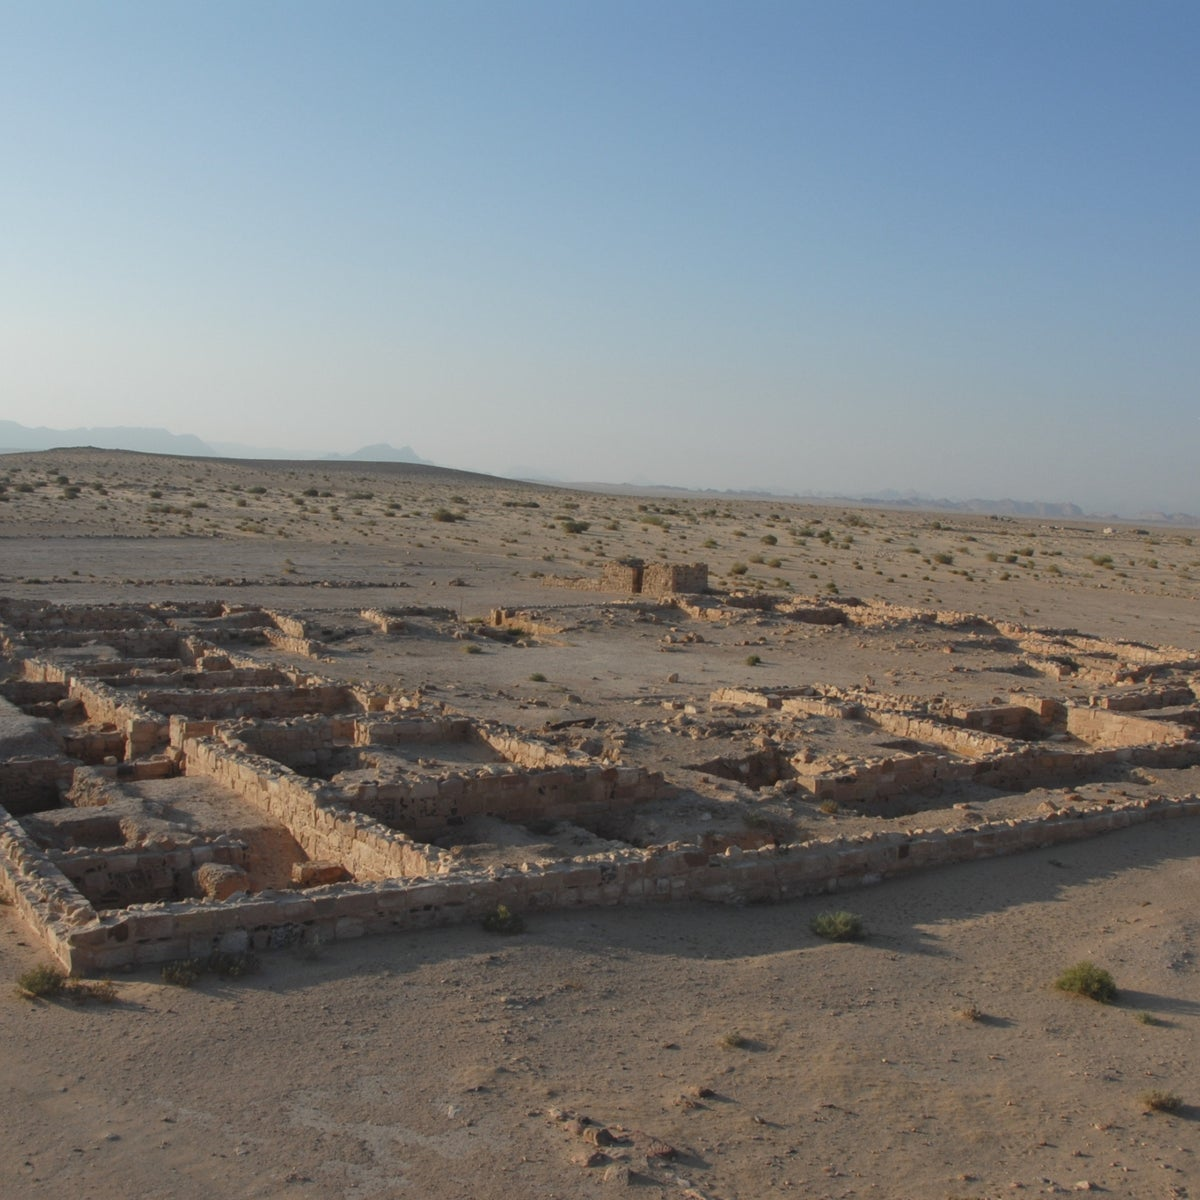 Humayma, ruins of an early Islamic trading post